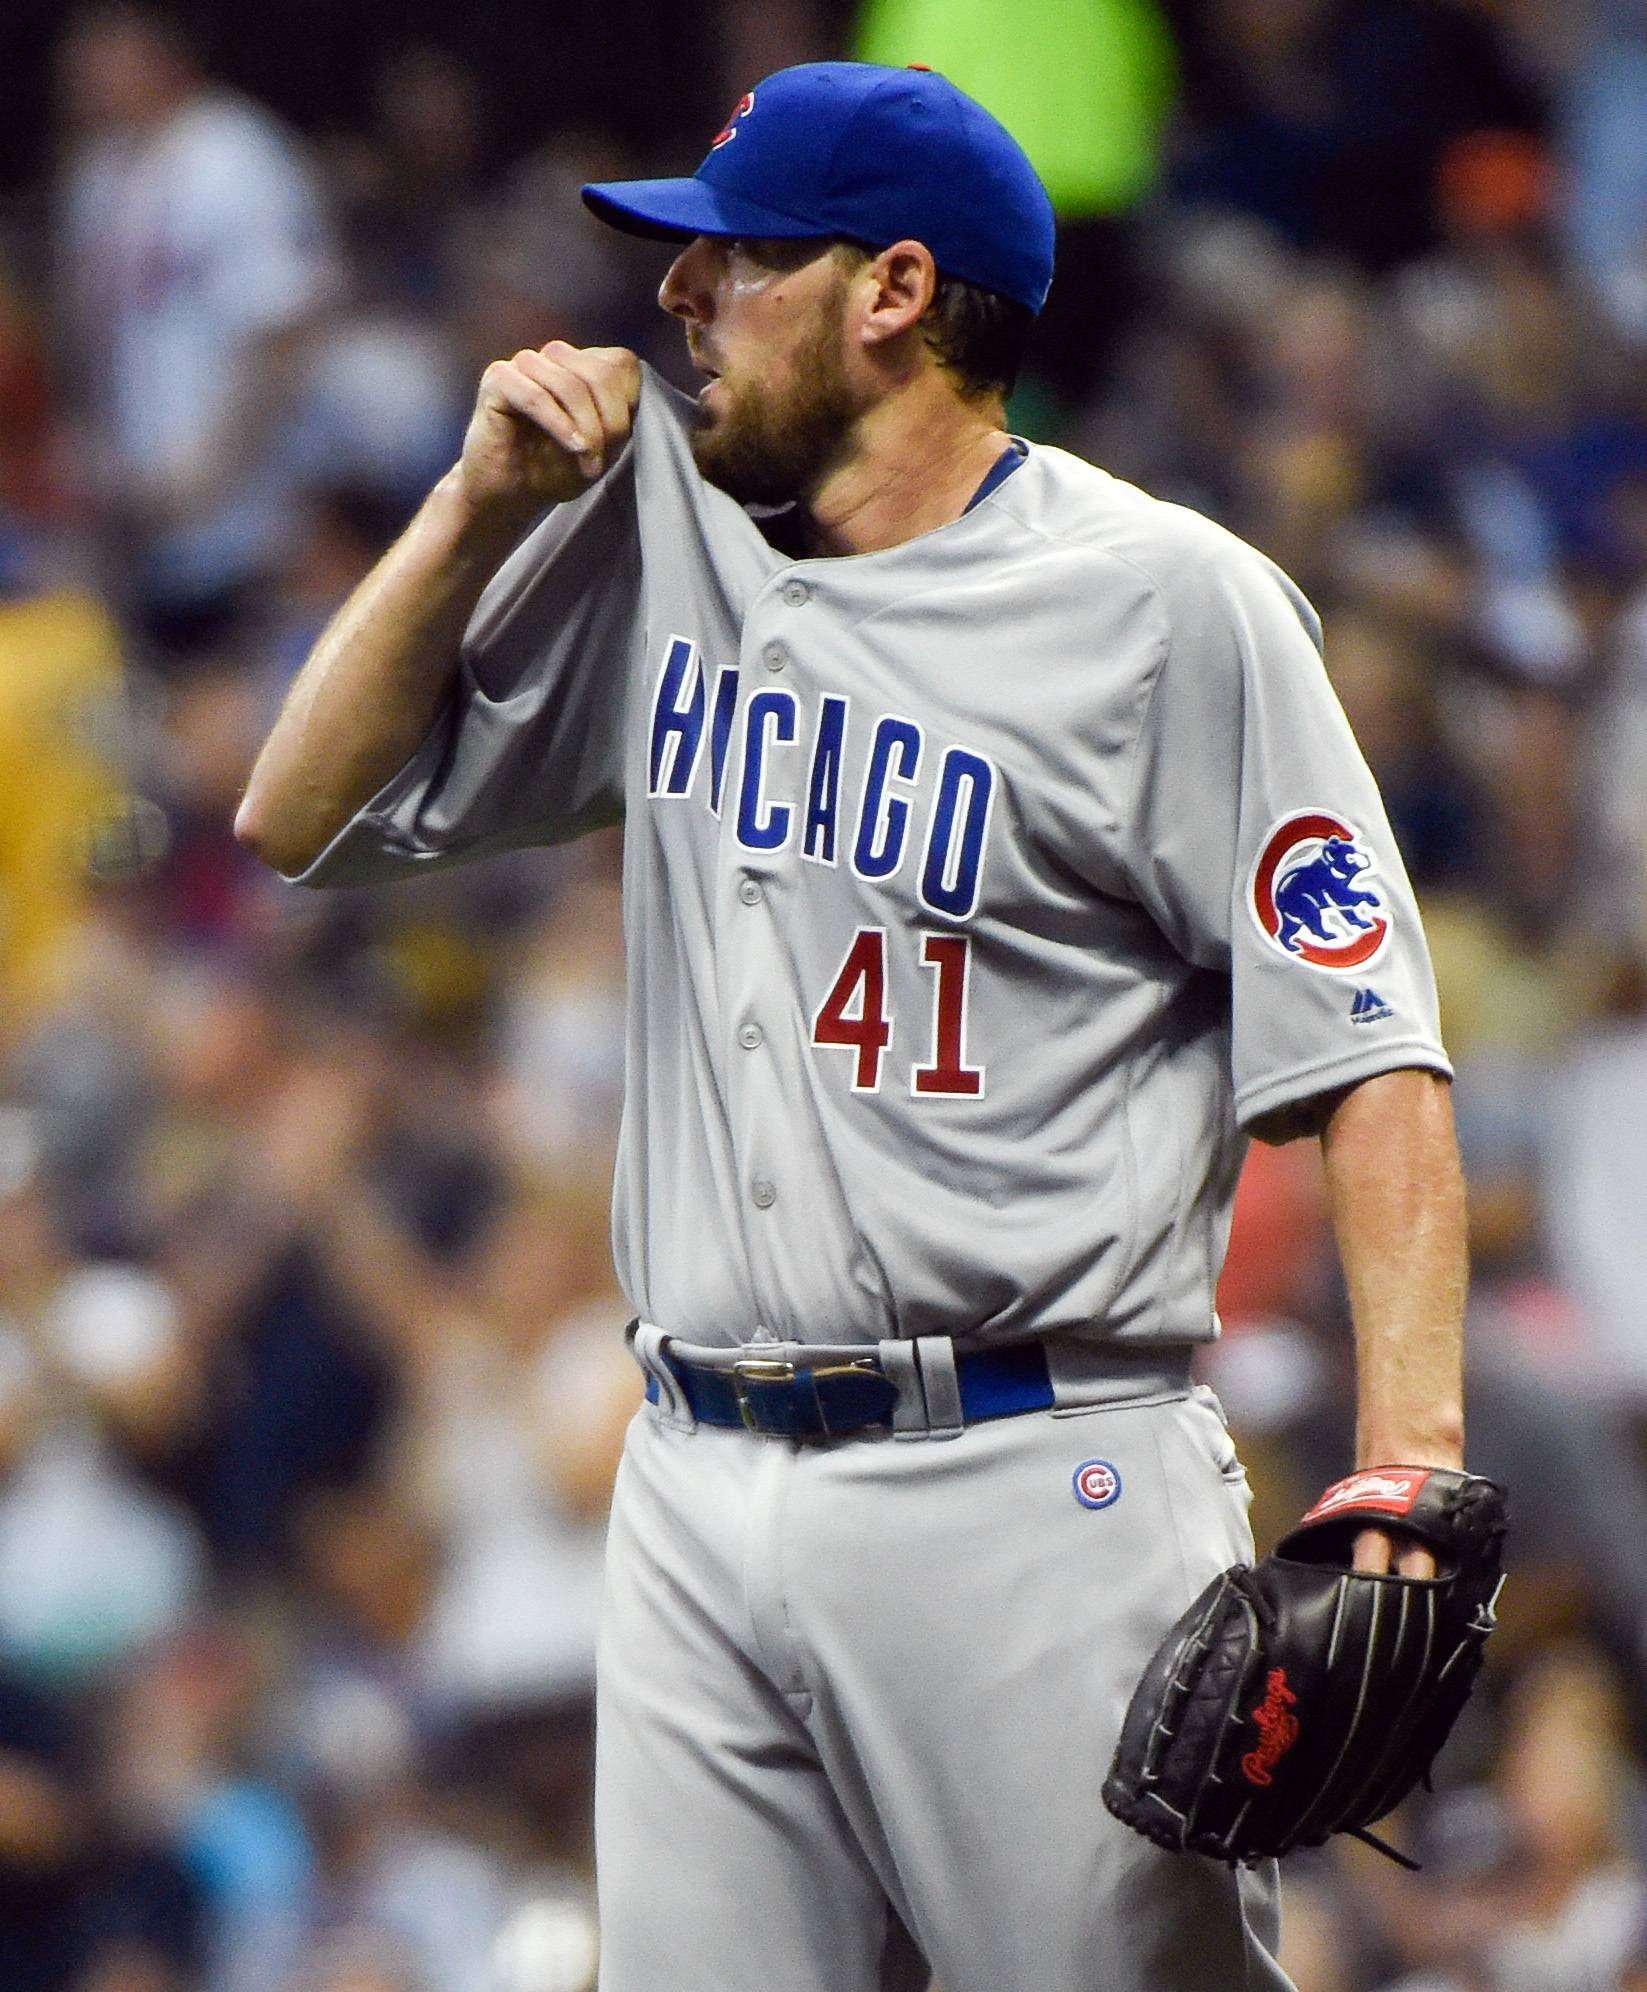 Cubs starting pitcher John Lackey reacts after giving up a 2-run home run to Milwaukee Brewers' Jonathan Lucroy during the first inning Saturday.